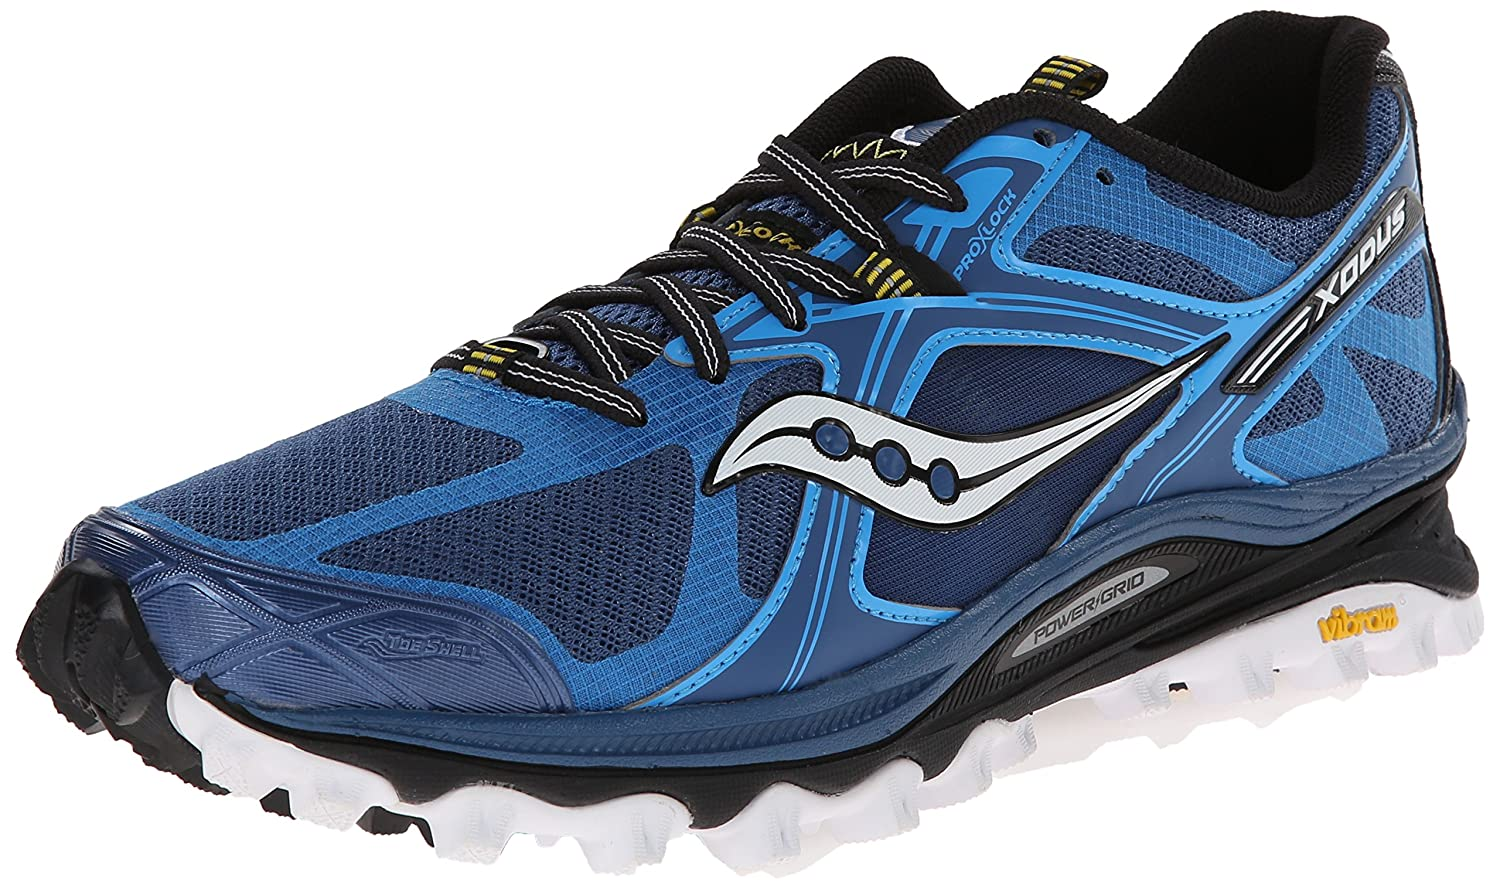 Should I Buy Trail Shoes One Size Larger